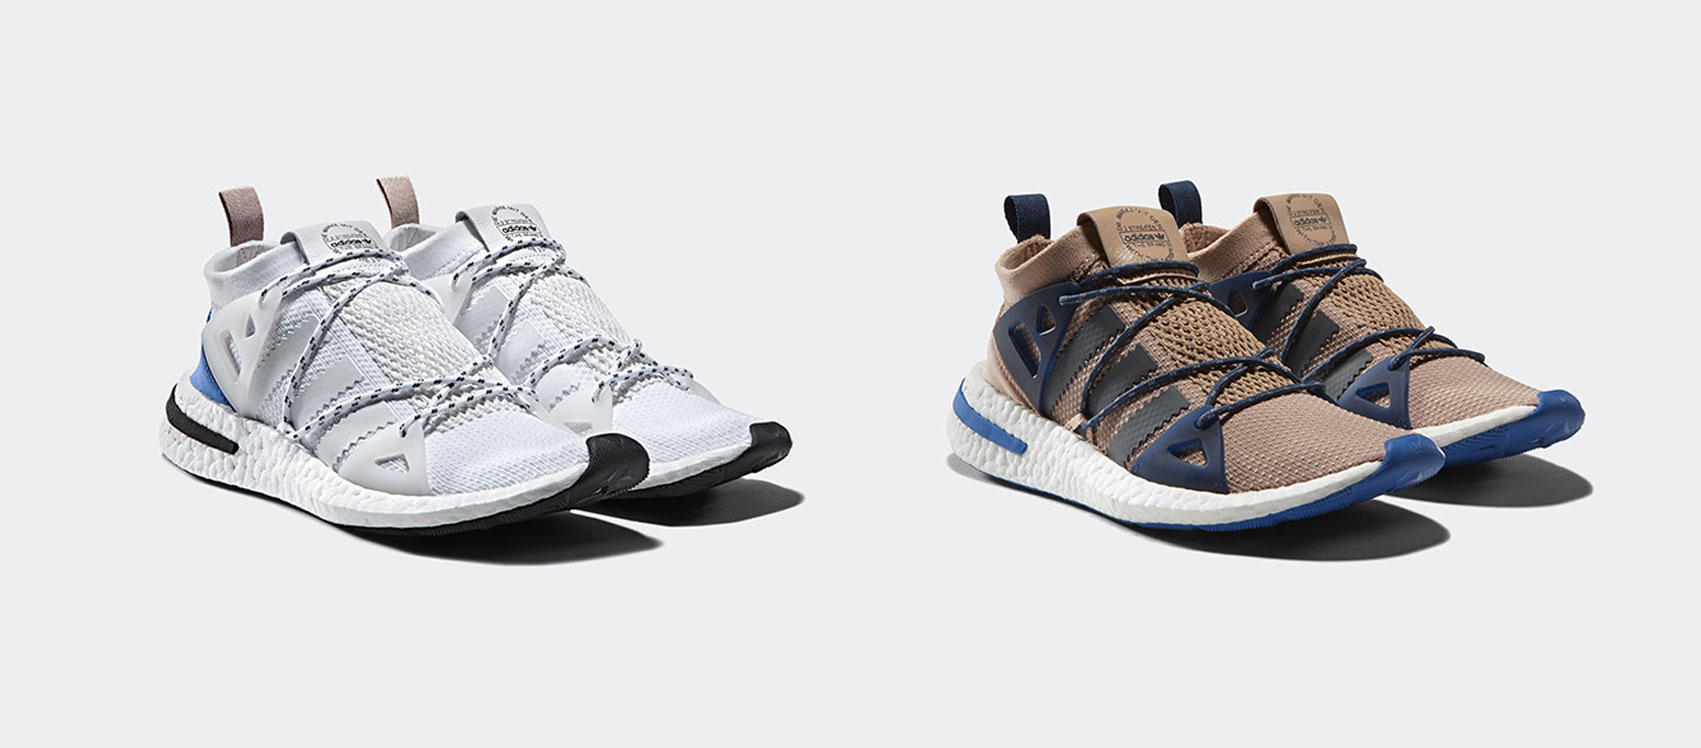 Adidas Arkyn – new model presented by Kendall Jenner 8445fec76cd